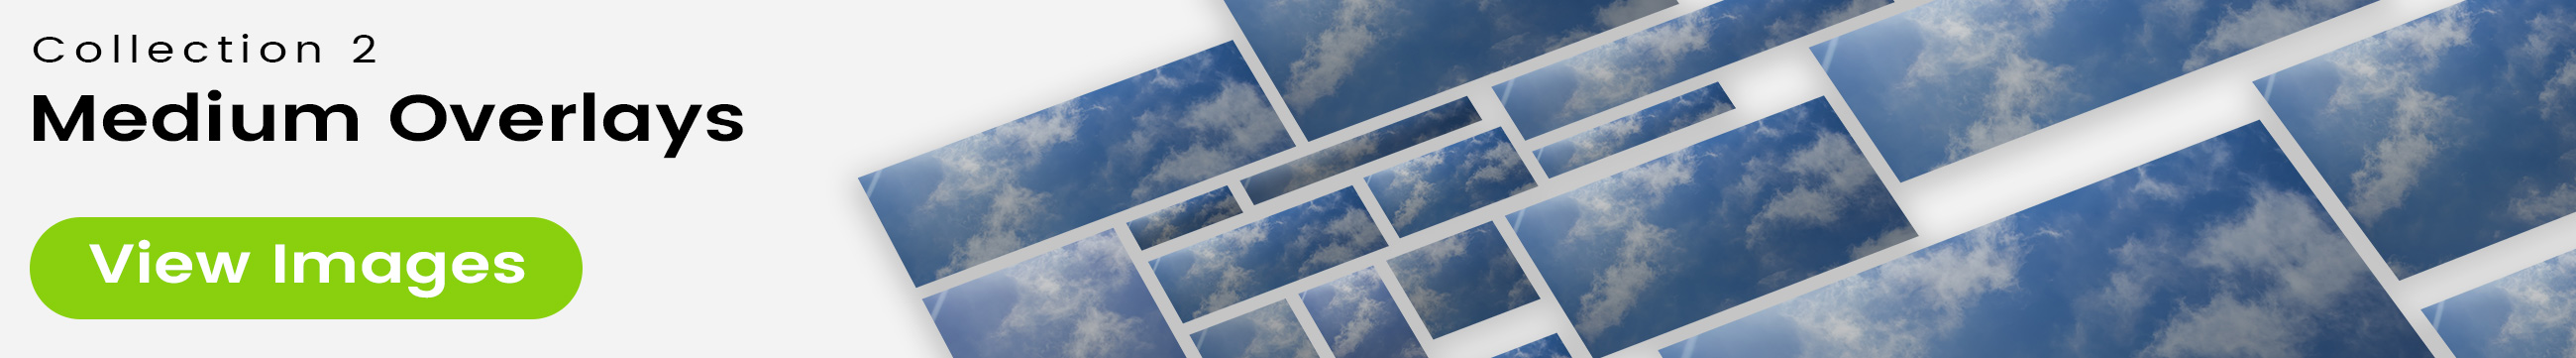 See 25 bonus images included with clouds stock image 9483. Collection 2 of 4 features a medium-dark overlay design.